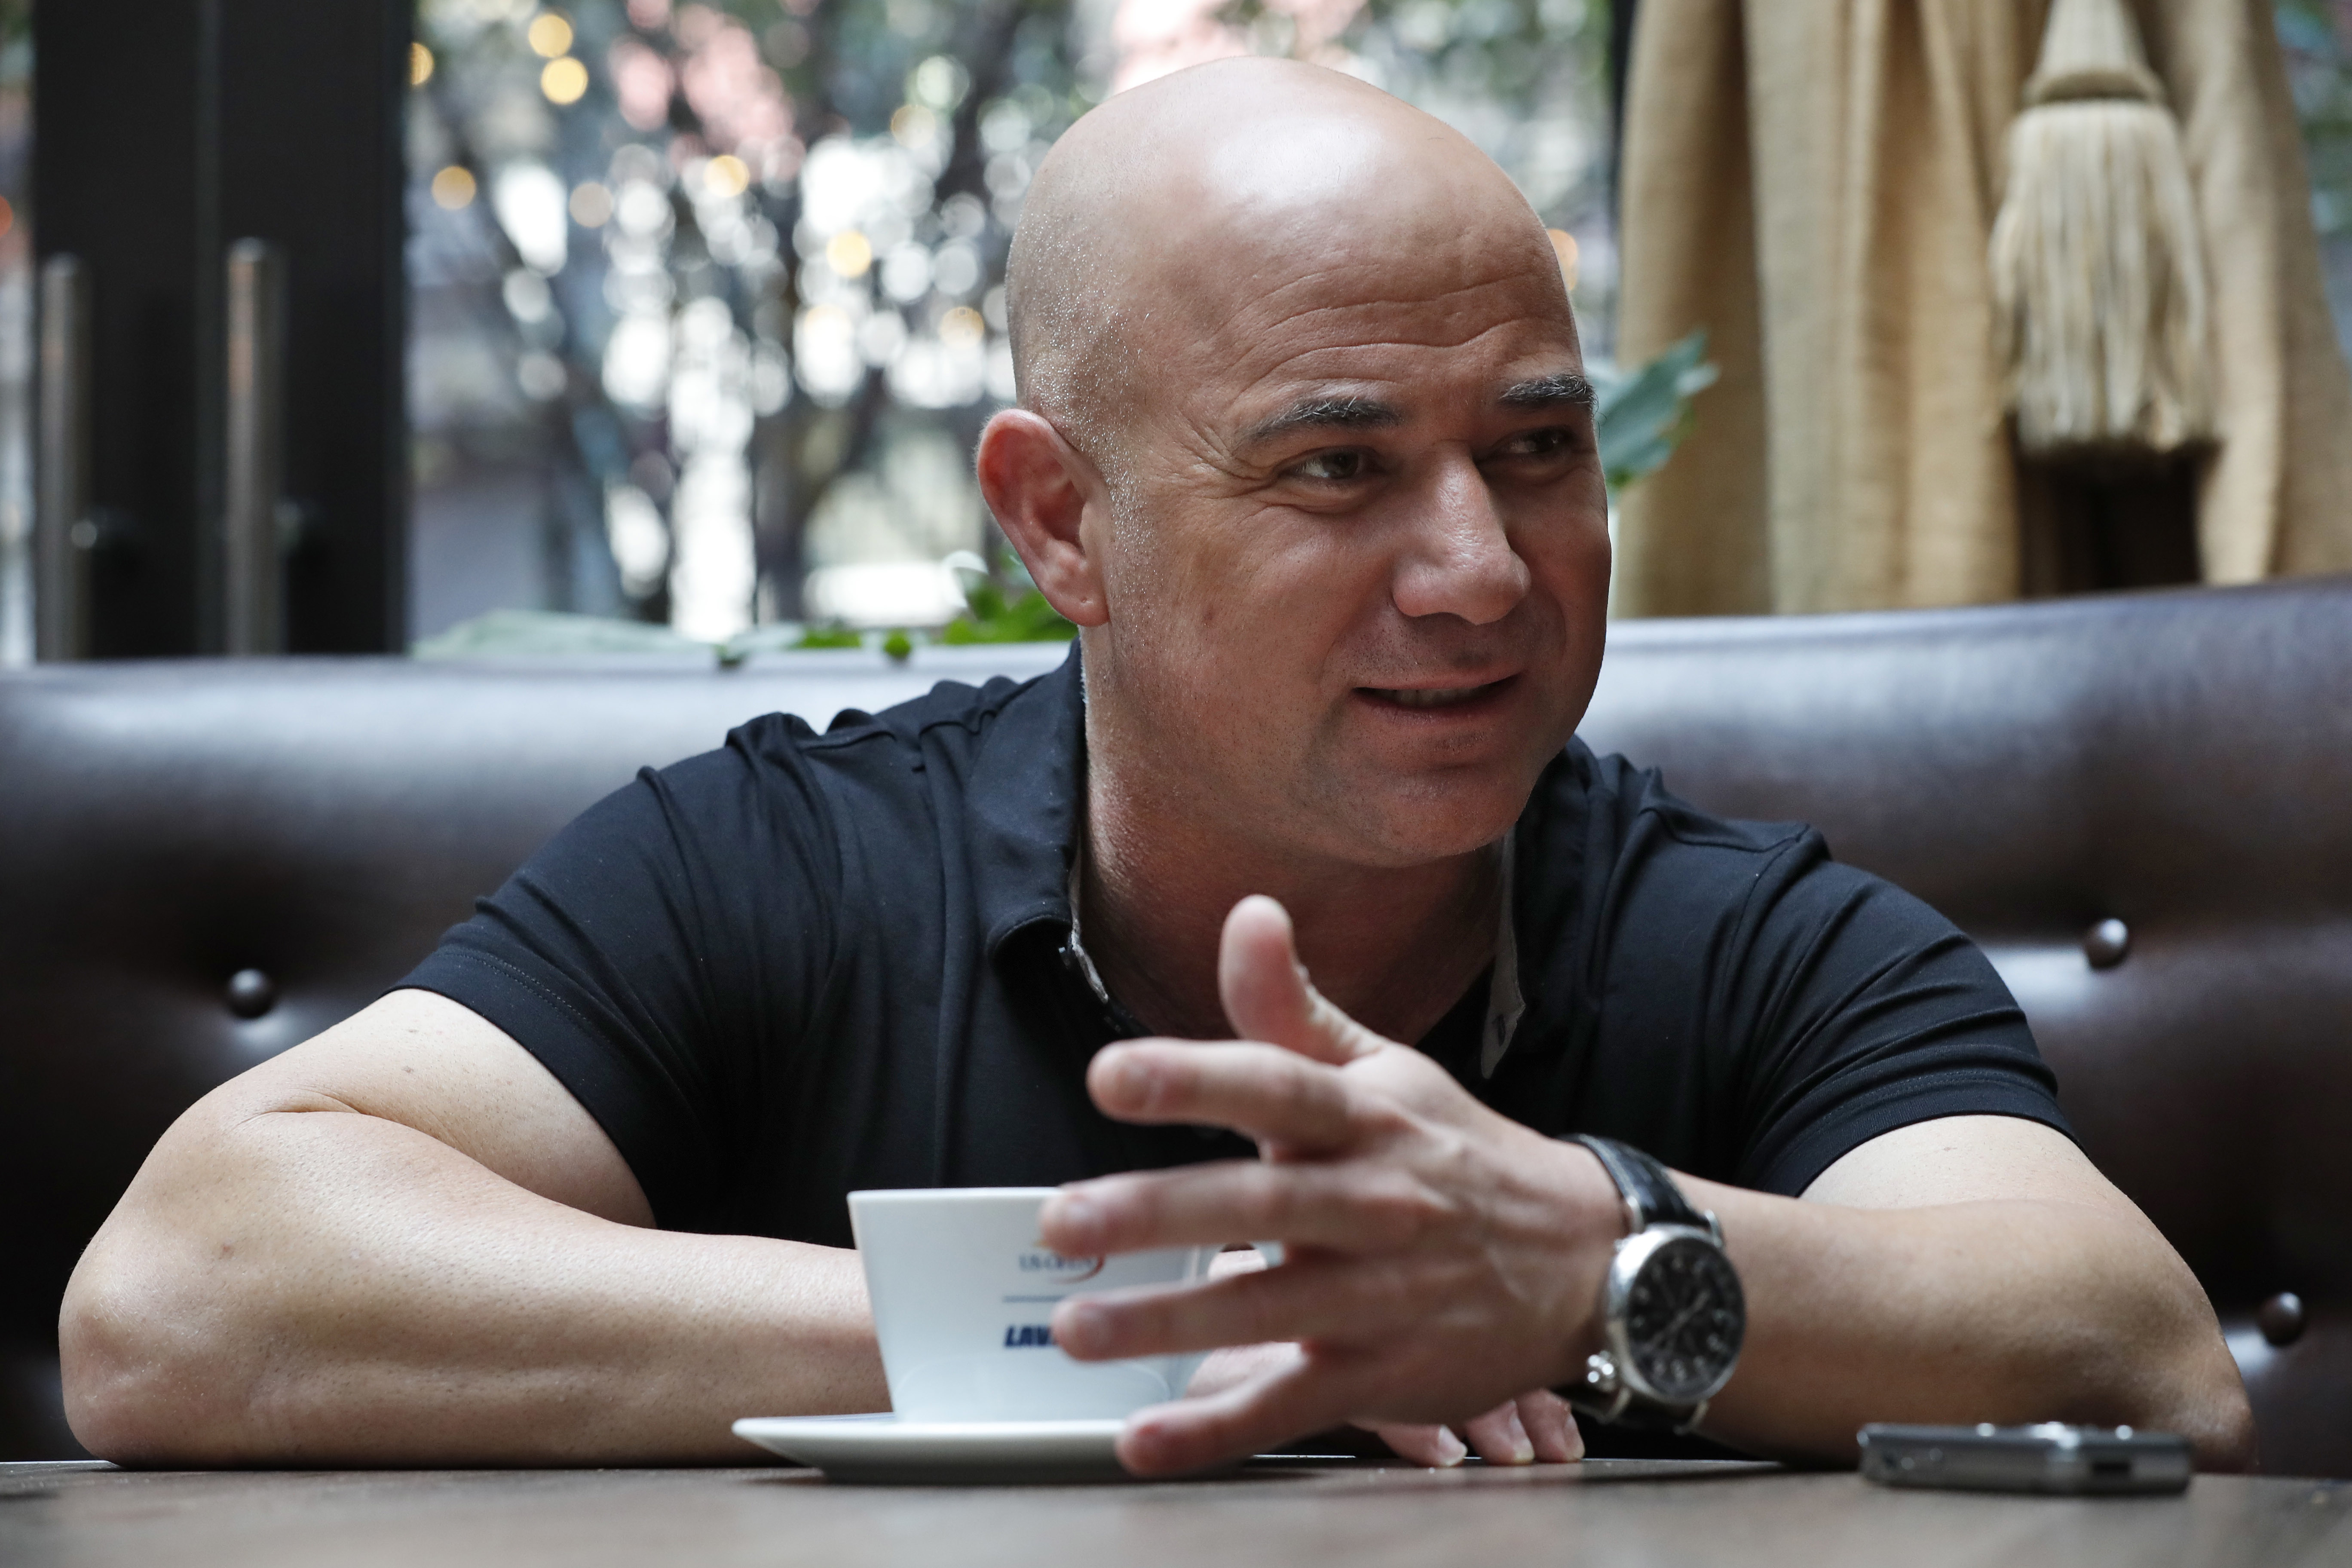 Andre Agassi speaks during an interview with The Associated Press, Tuesday, Aug. 30, 2016, in New York. It's been ten years since Agassi played the last match of his career at the 2006 US Open. (AP Photo/Mary Altaffer)